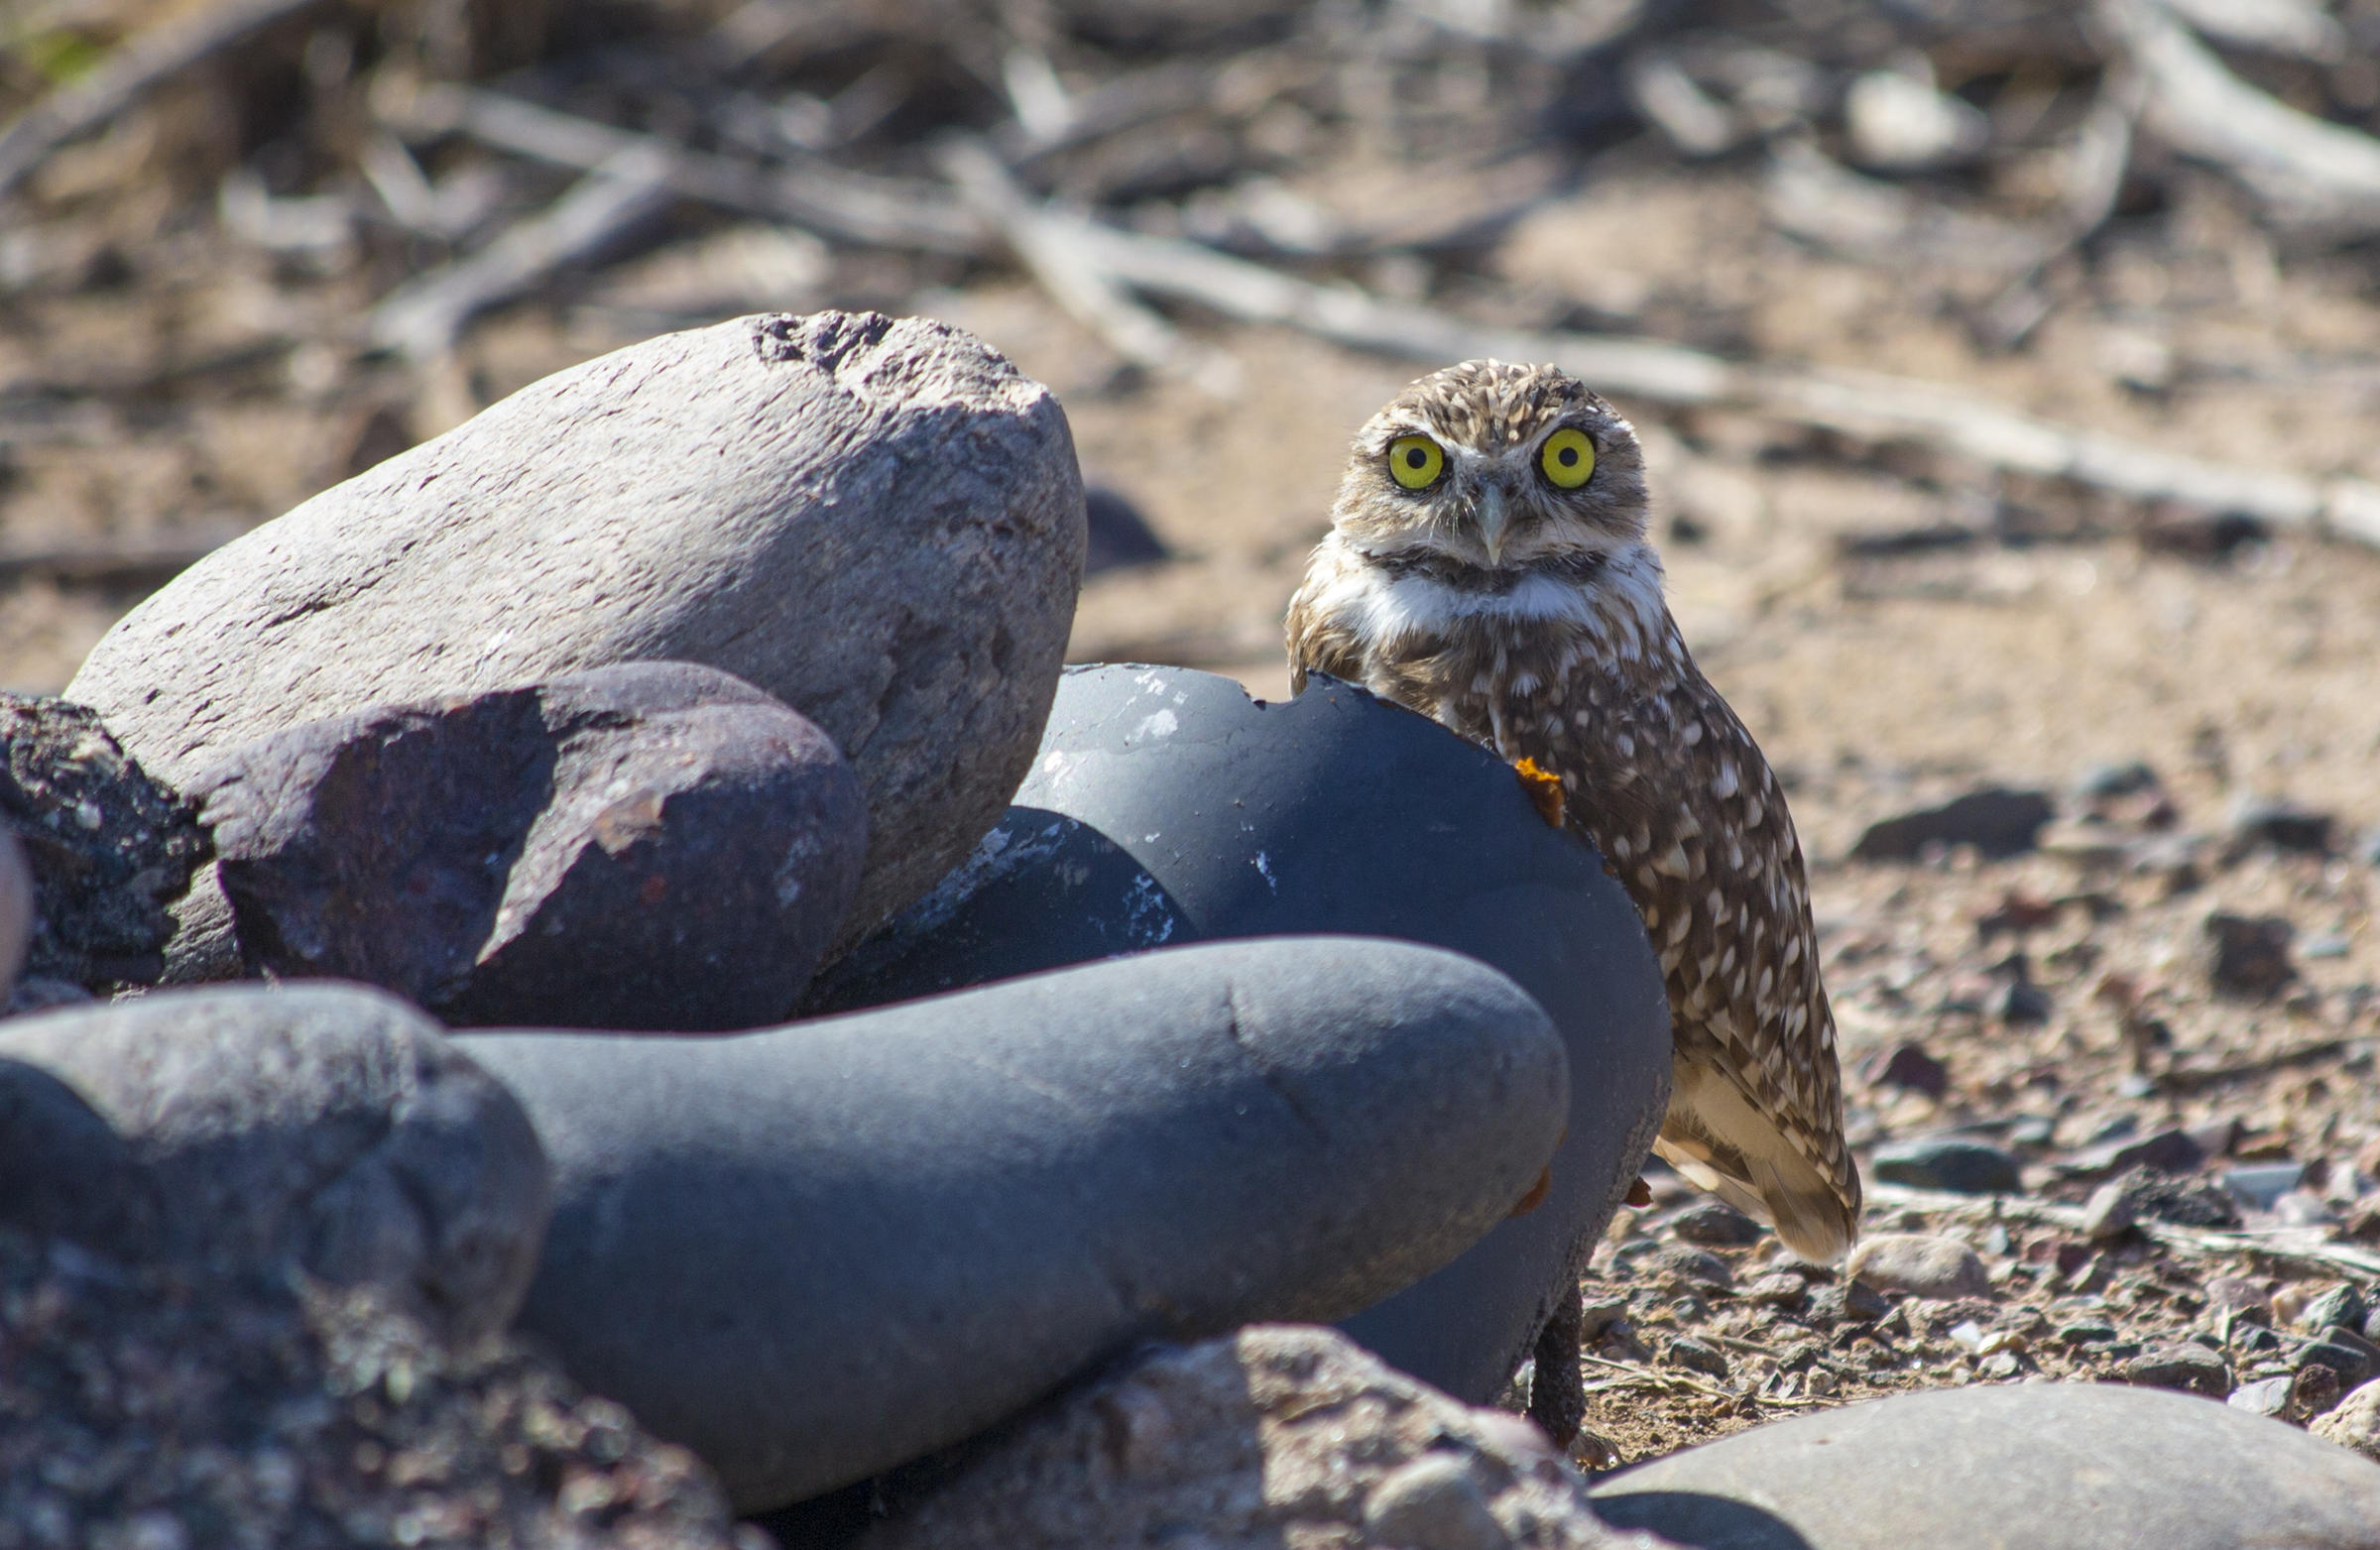 A Burrowing Owl peers over a rock placed by its artificial burrow.